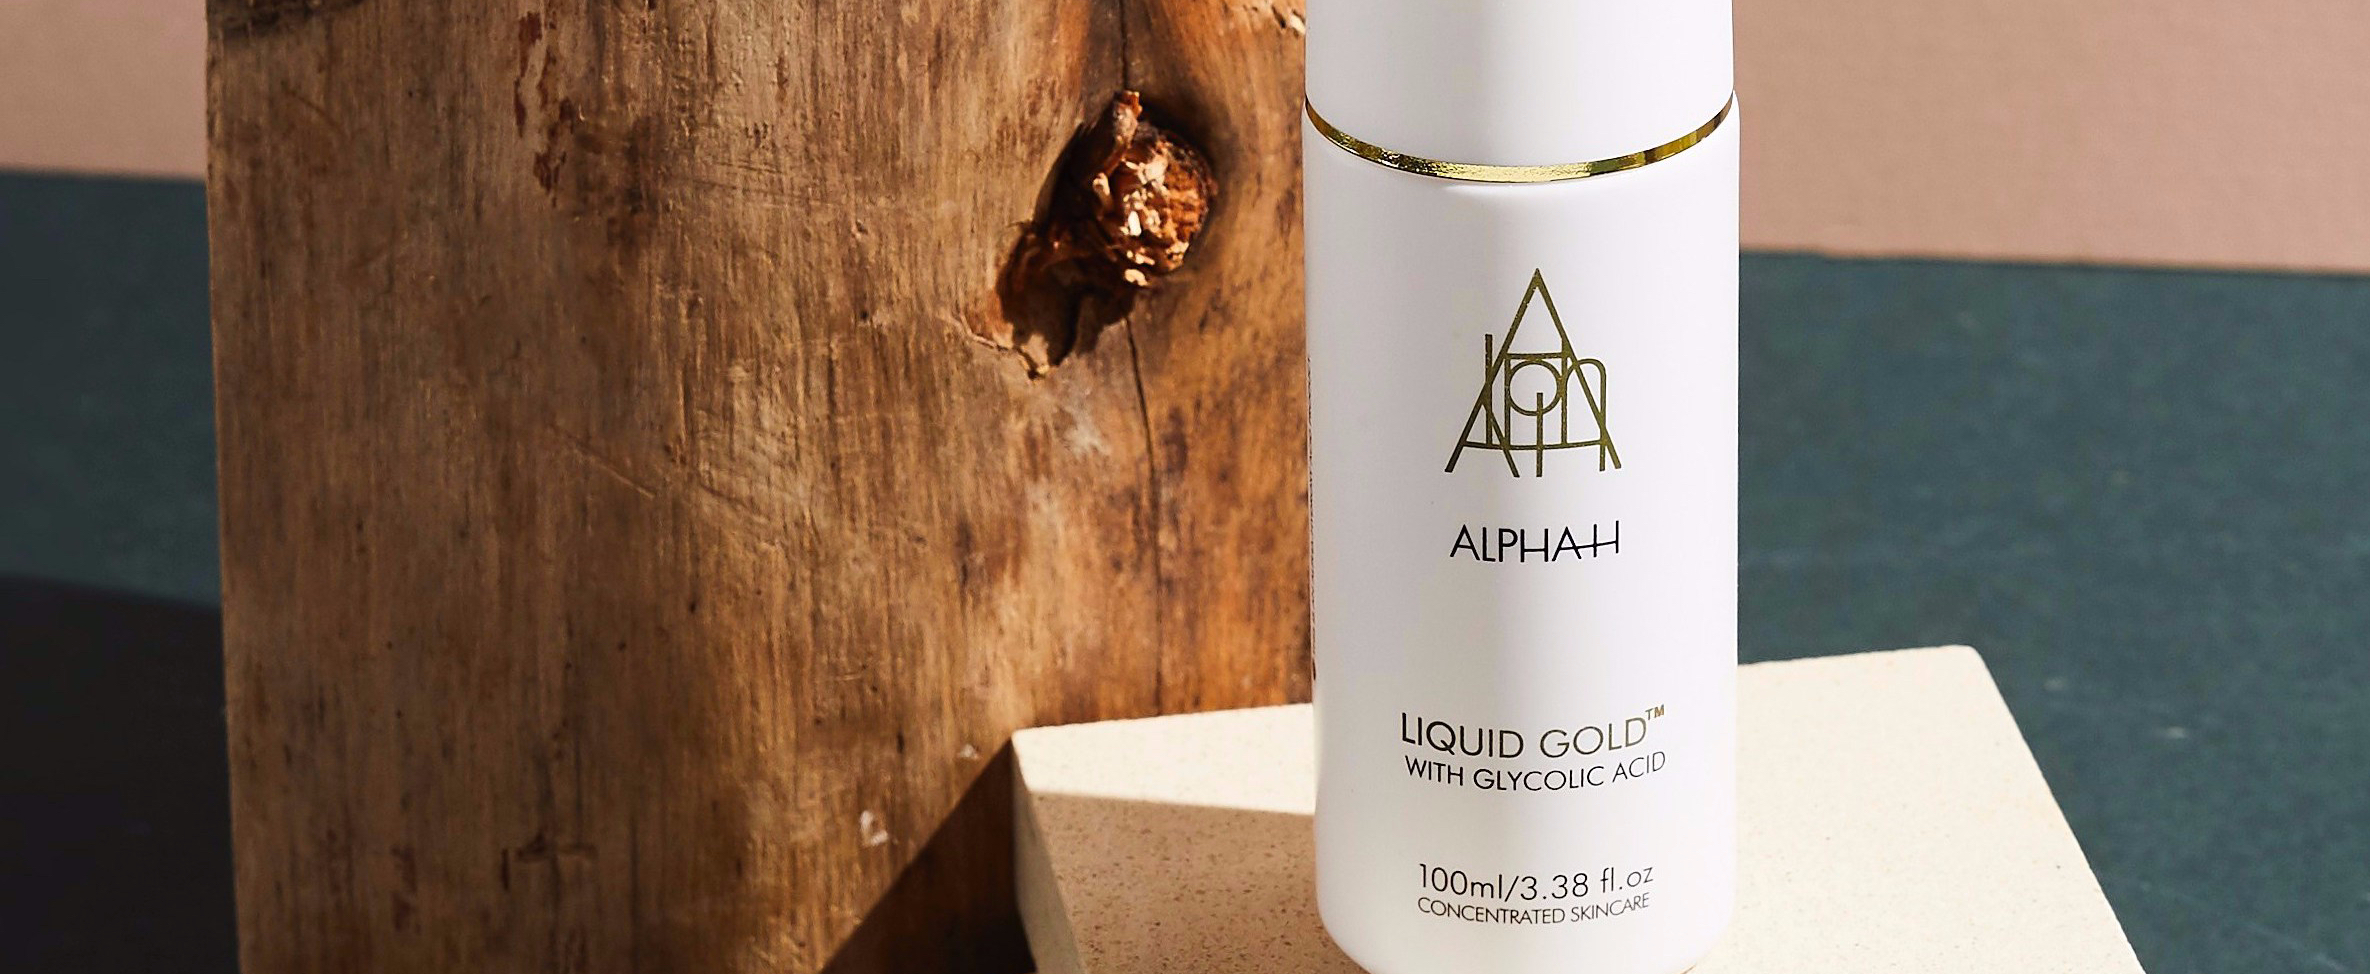 What the Heck is Liquid Gold and How Do I Use It?